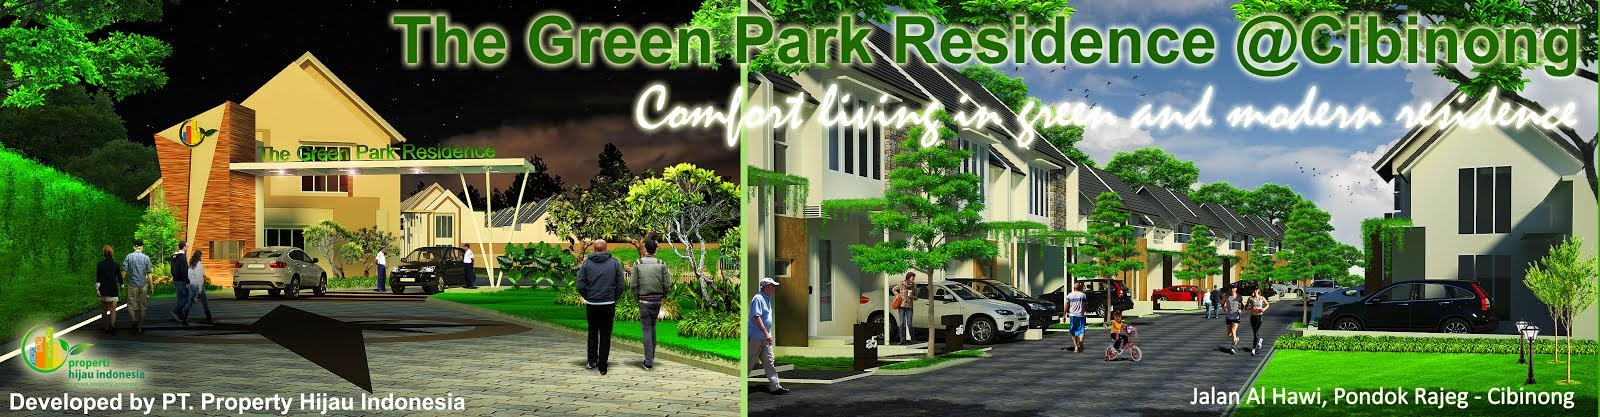 The Green Park Residence